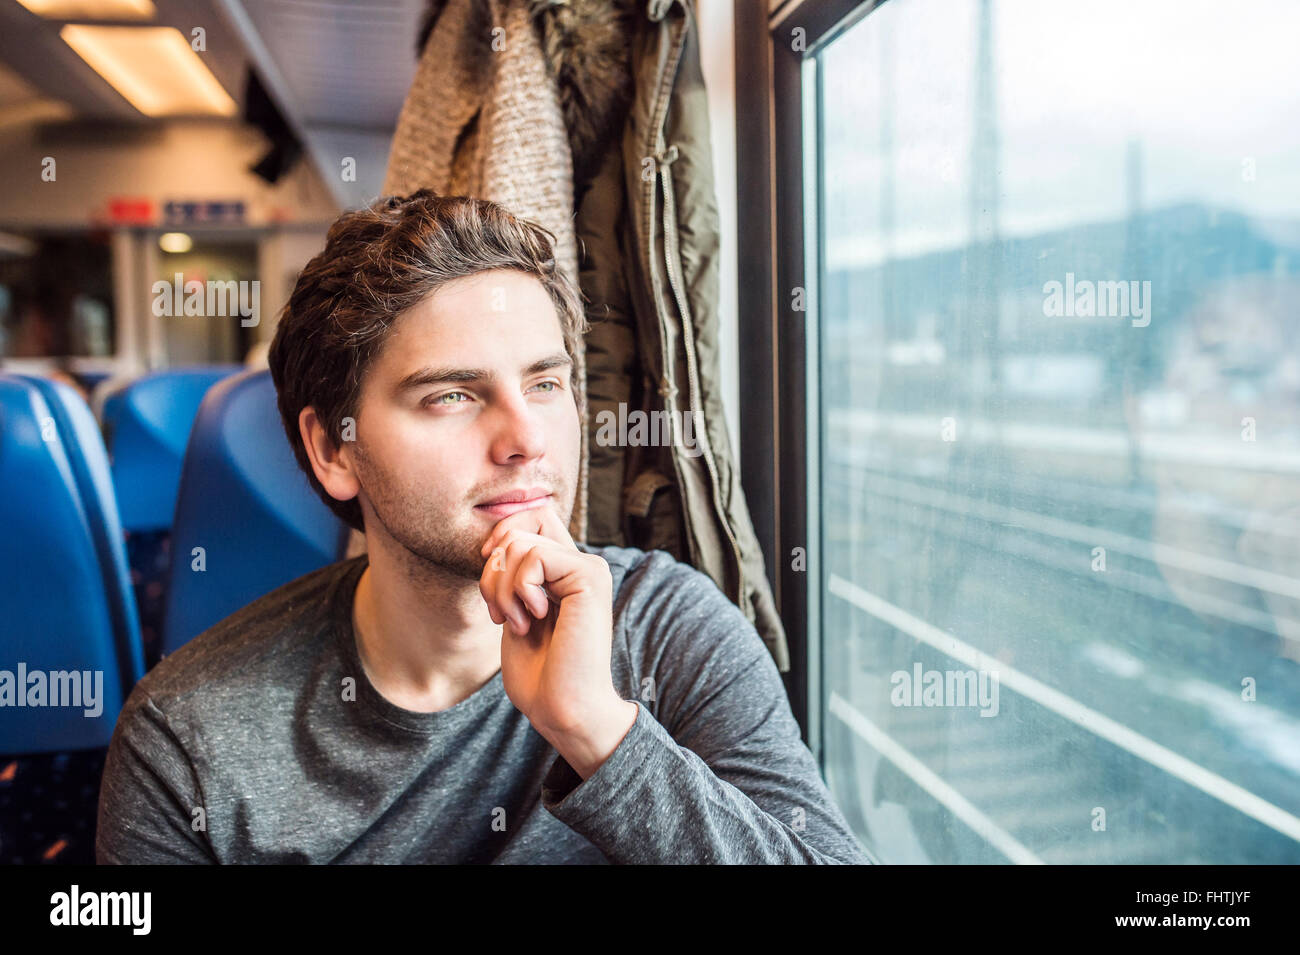 Young man in train car looking out of window - Stock Image